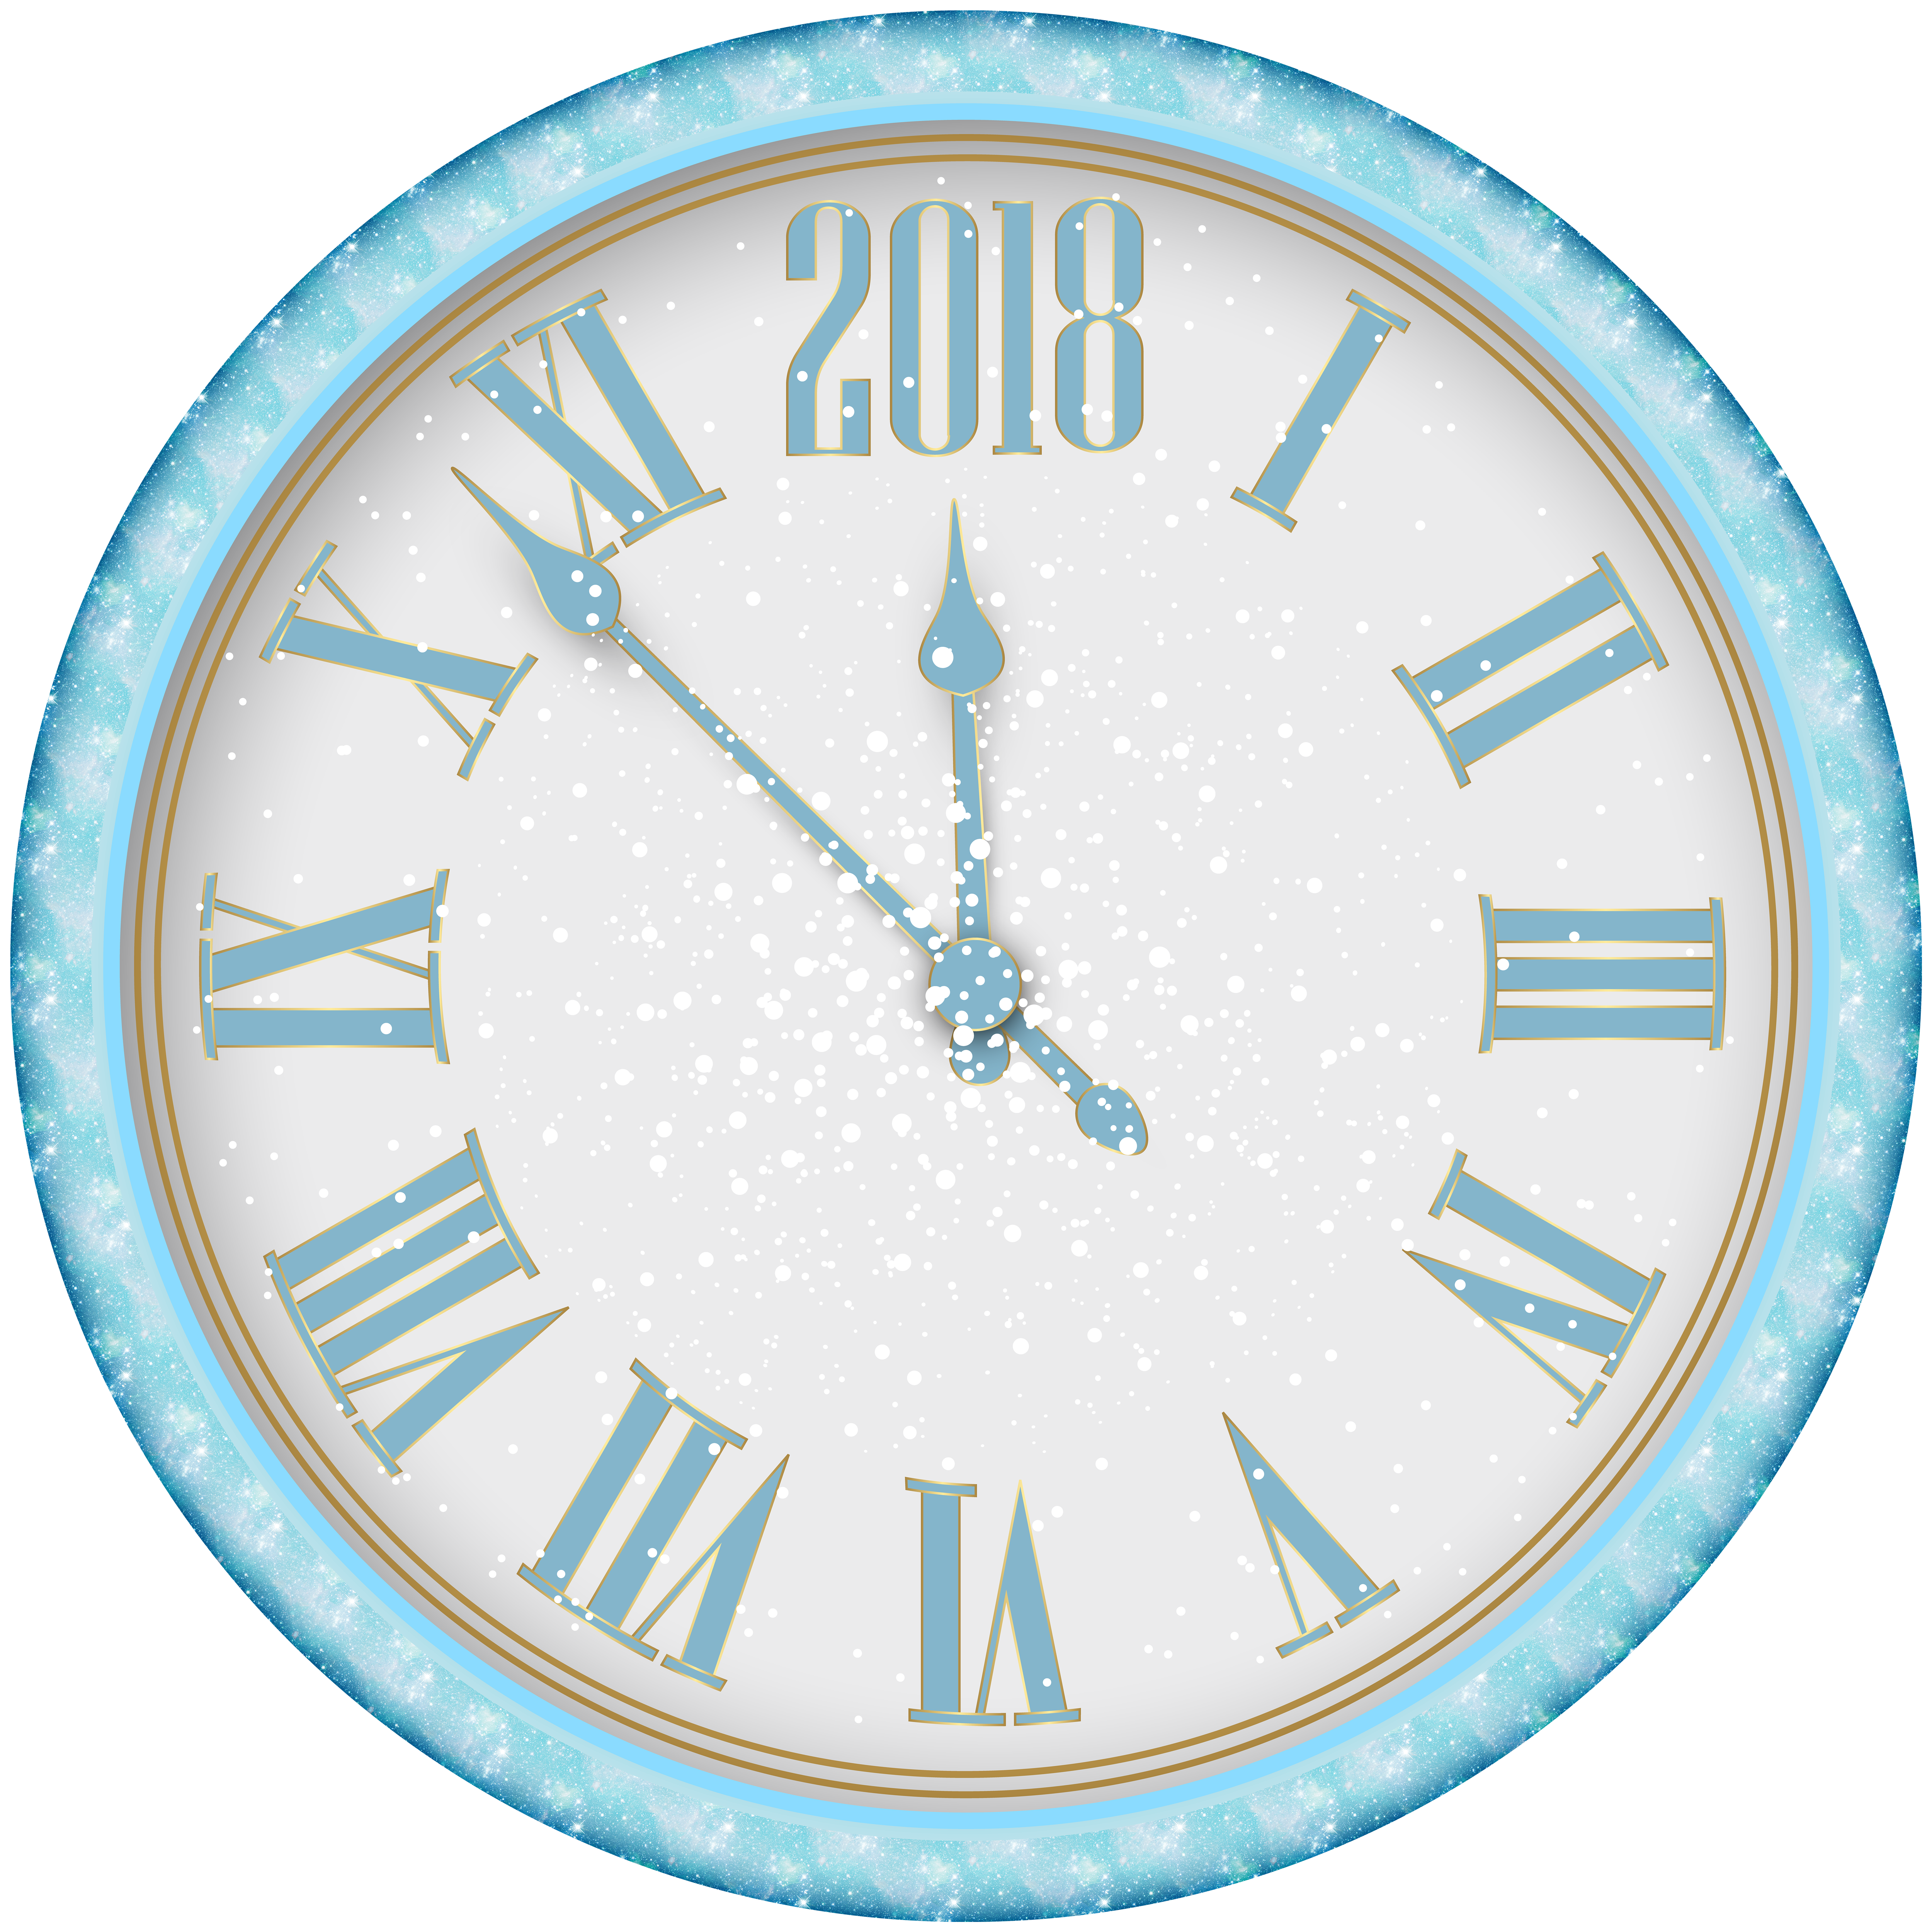 snowy clock png. Clocks clipart new year